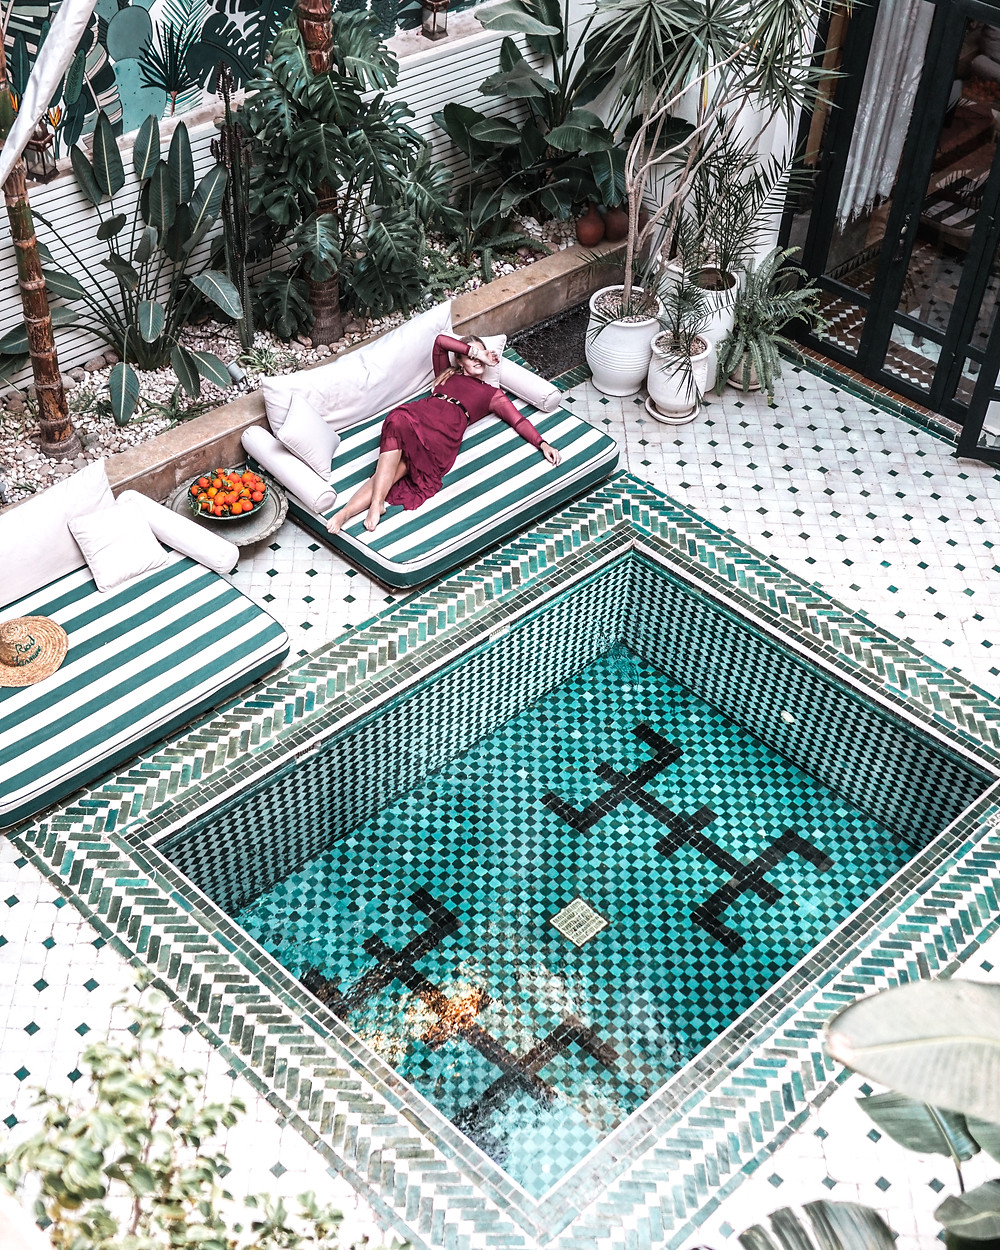 best place to stay in Marrakech: Riad Yasmine